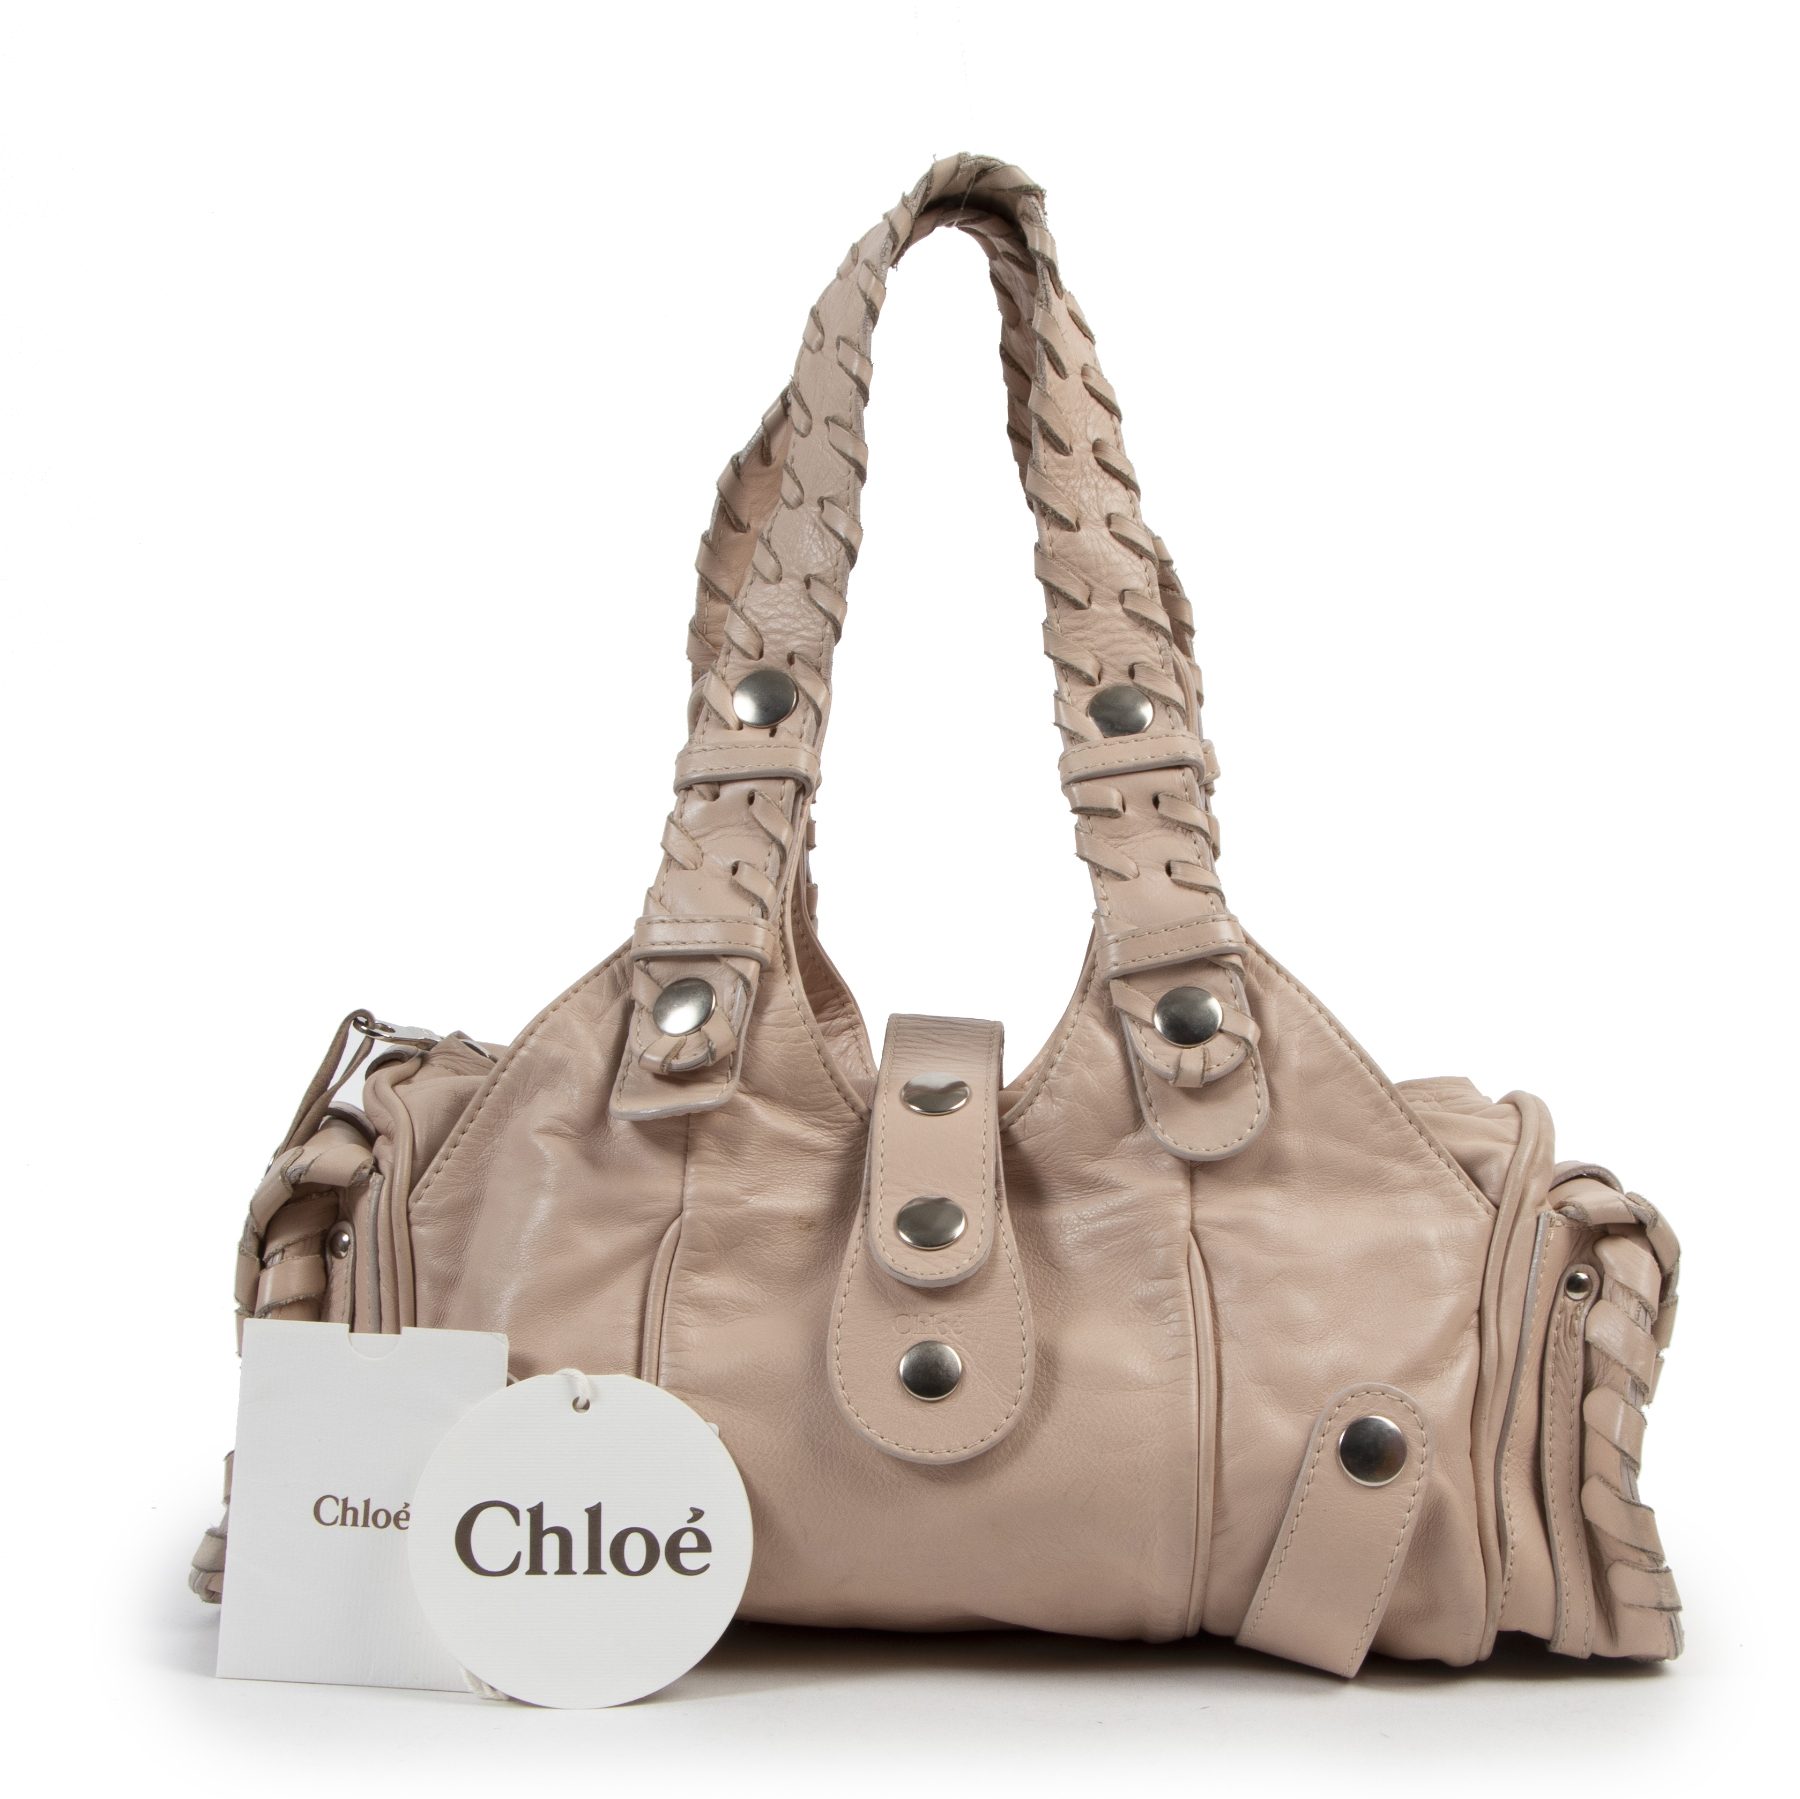 Buy online and safe second-hand preloved luxury handbags Chloé at LabelLOV Antwerp